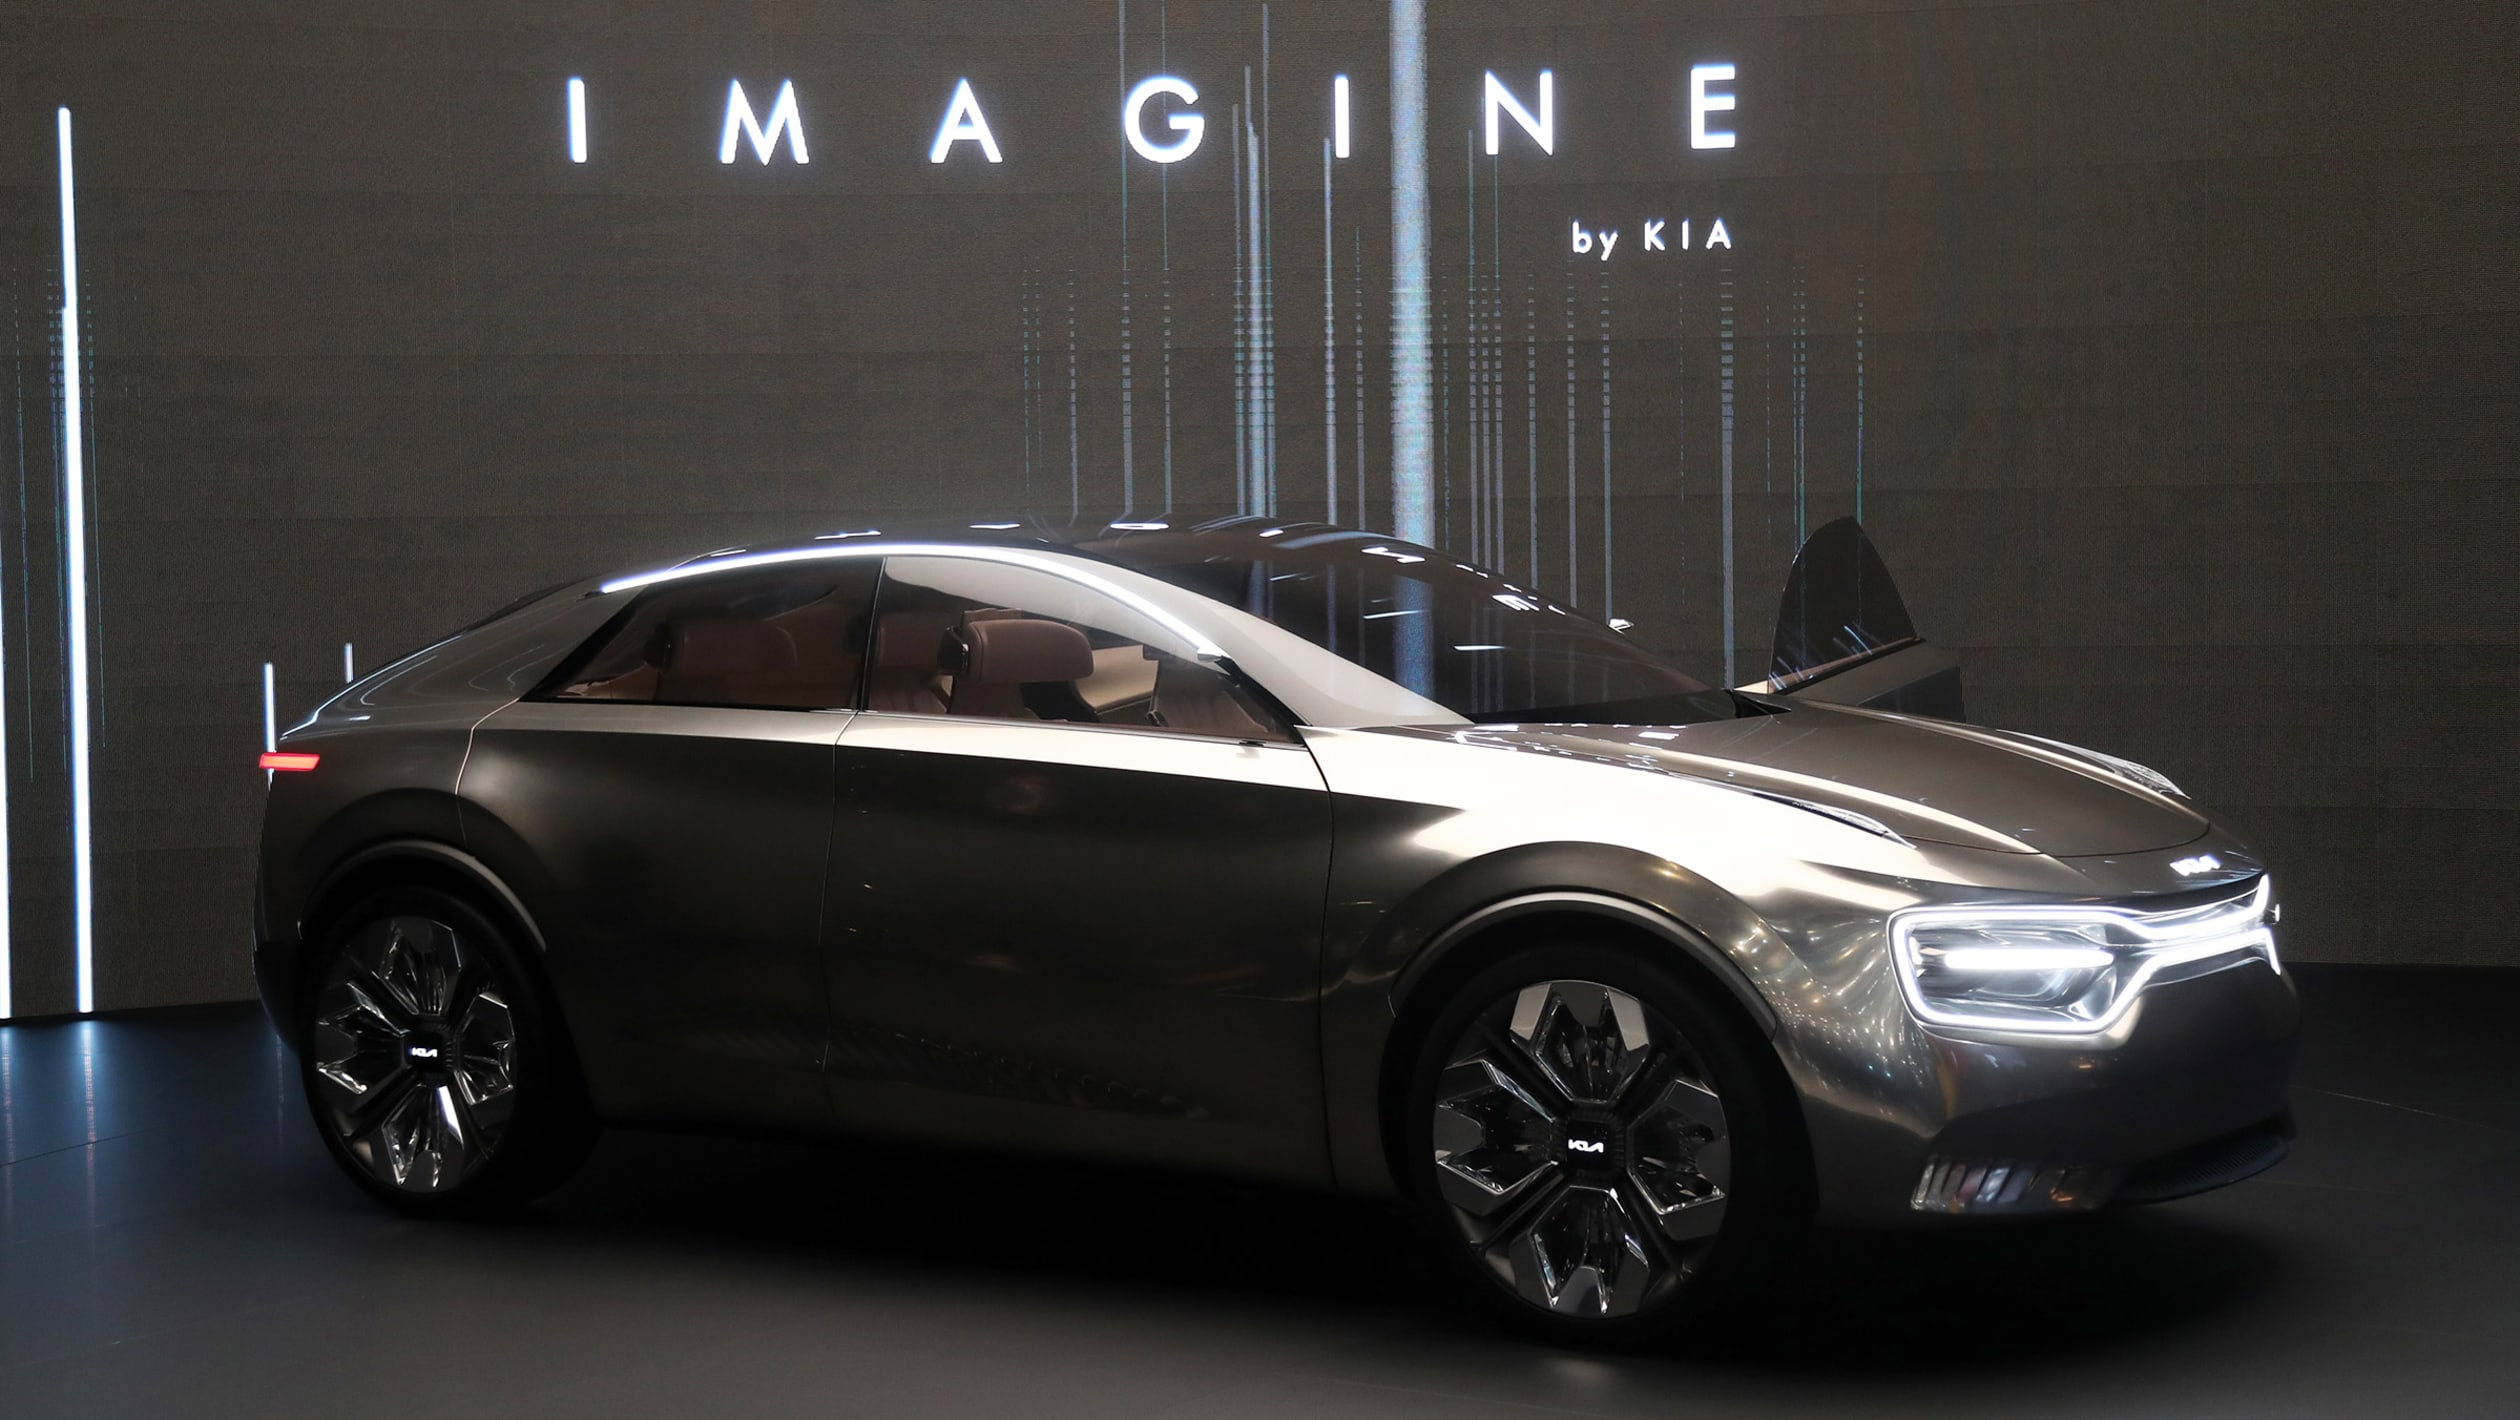 imagine-by-kia-kia-cv